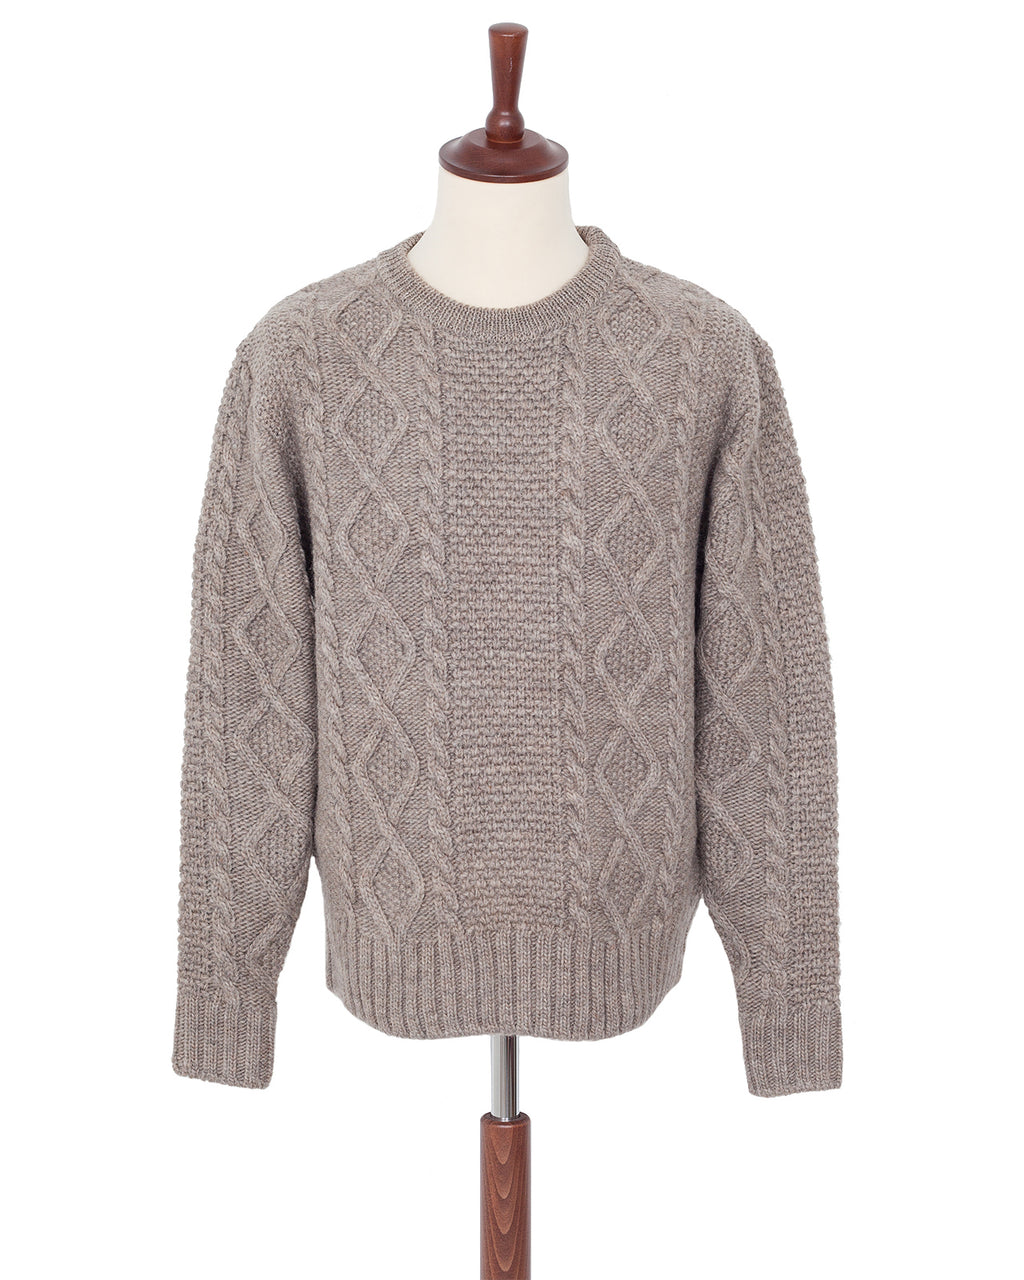 By Glad Hand, Islands, Wool Crew Neck Sweater, Grey